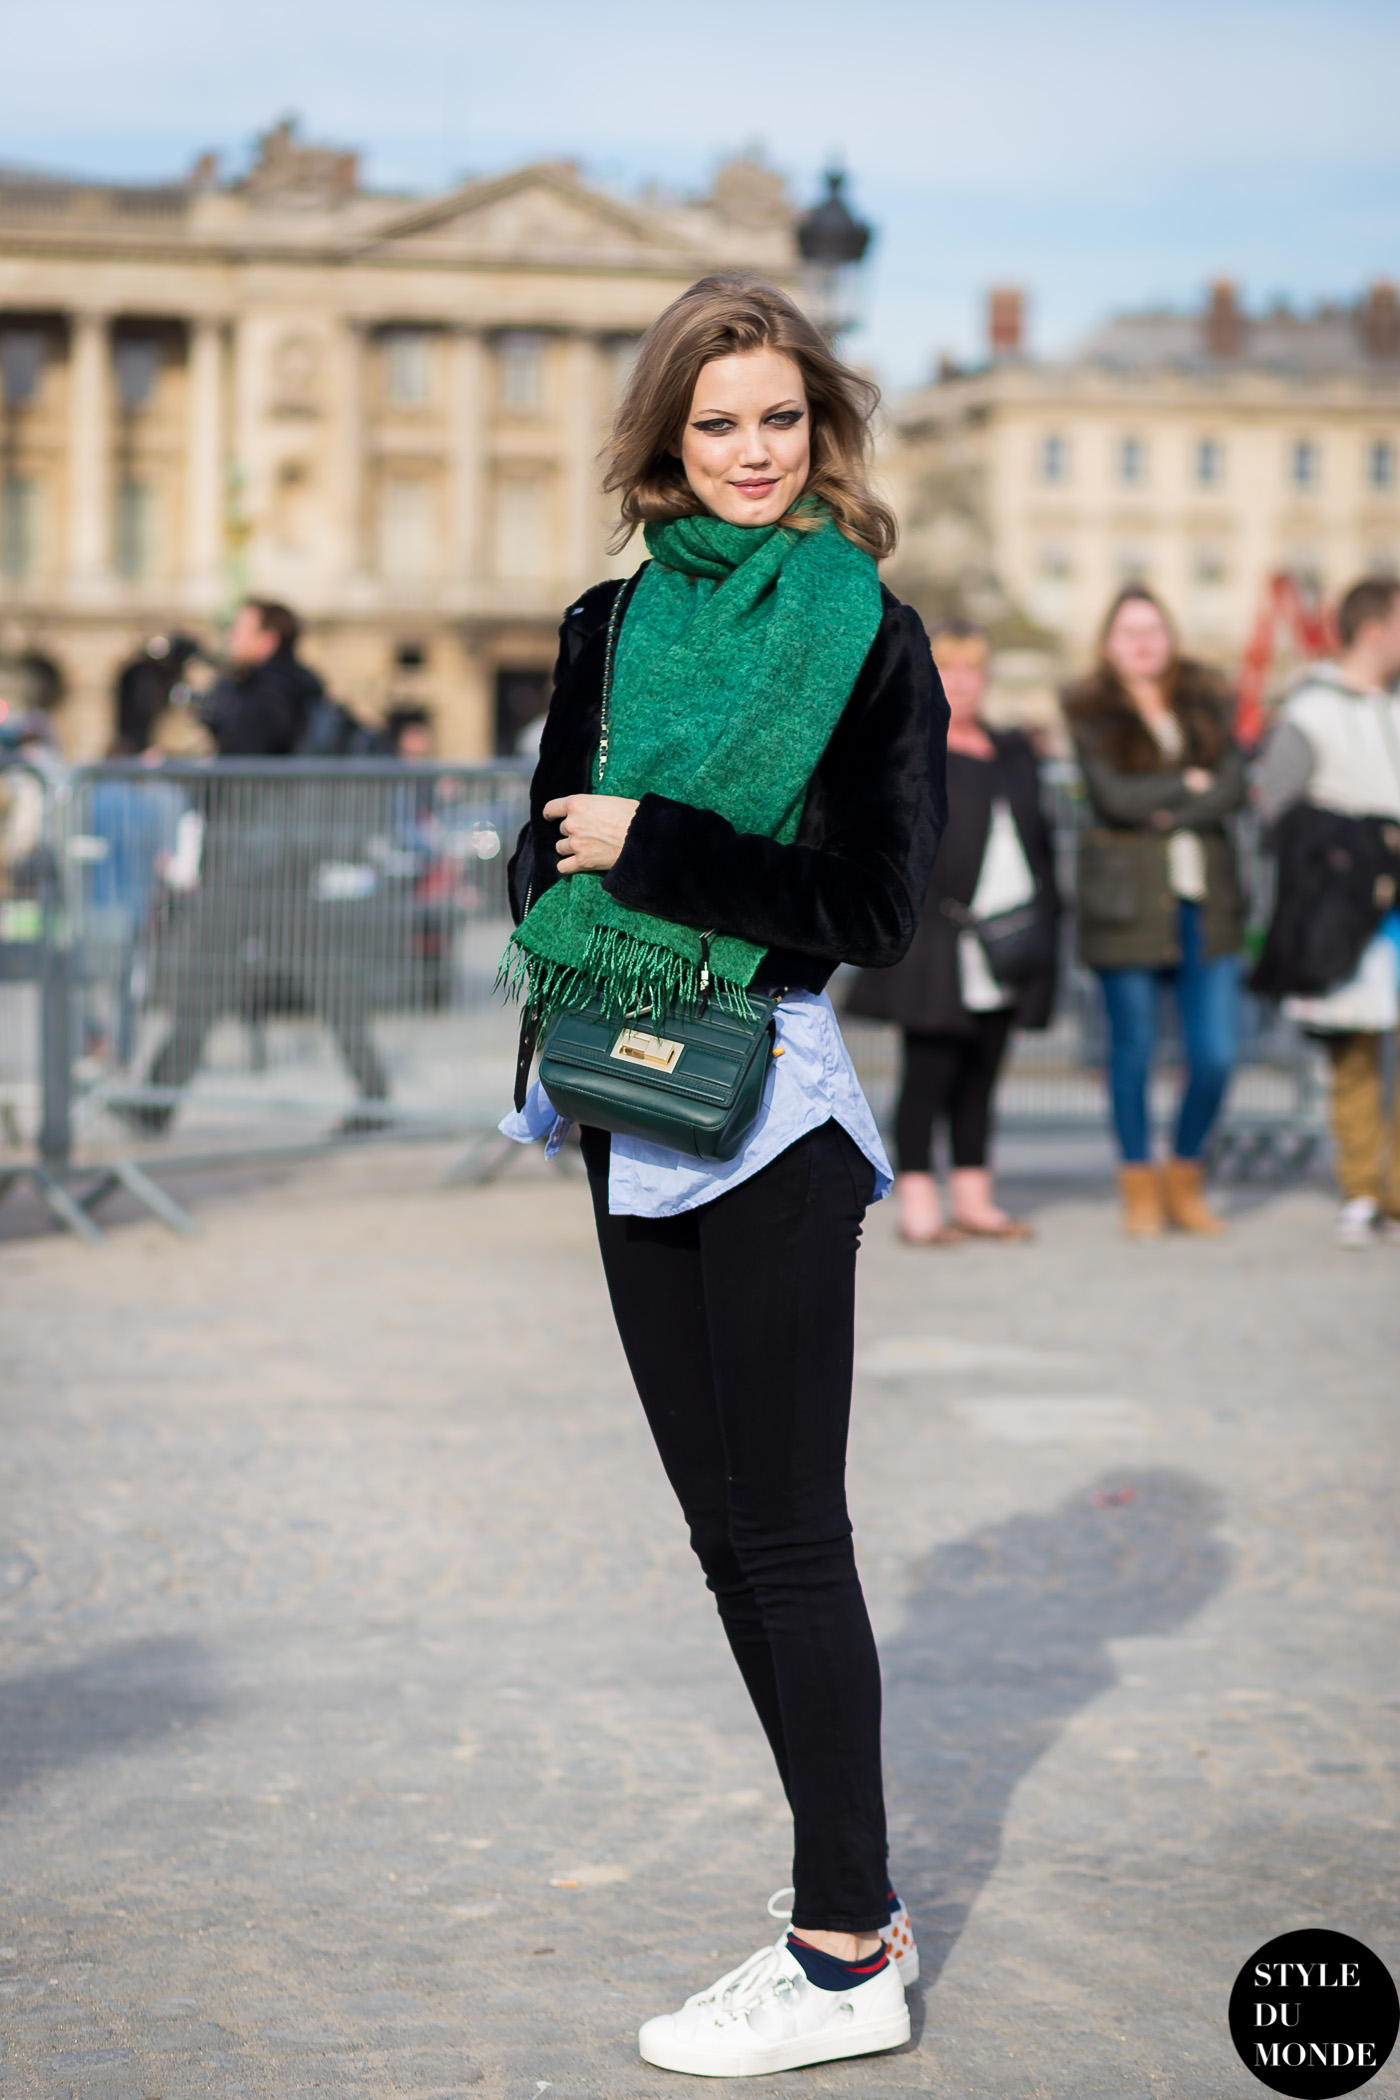 Lindsey Wixson Street Style Street Fashion Streetsnaps by STYLEDUMONDE Street Style Fashion Blog